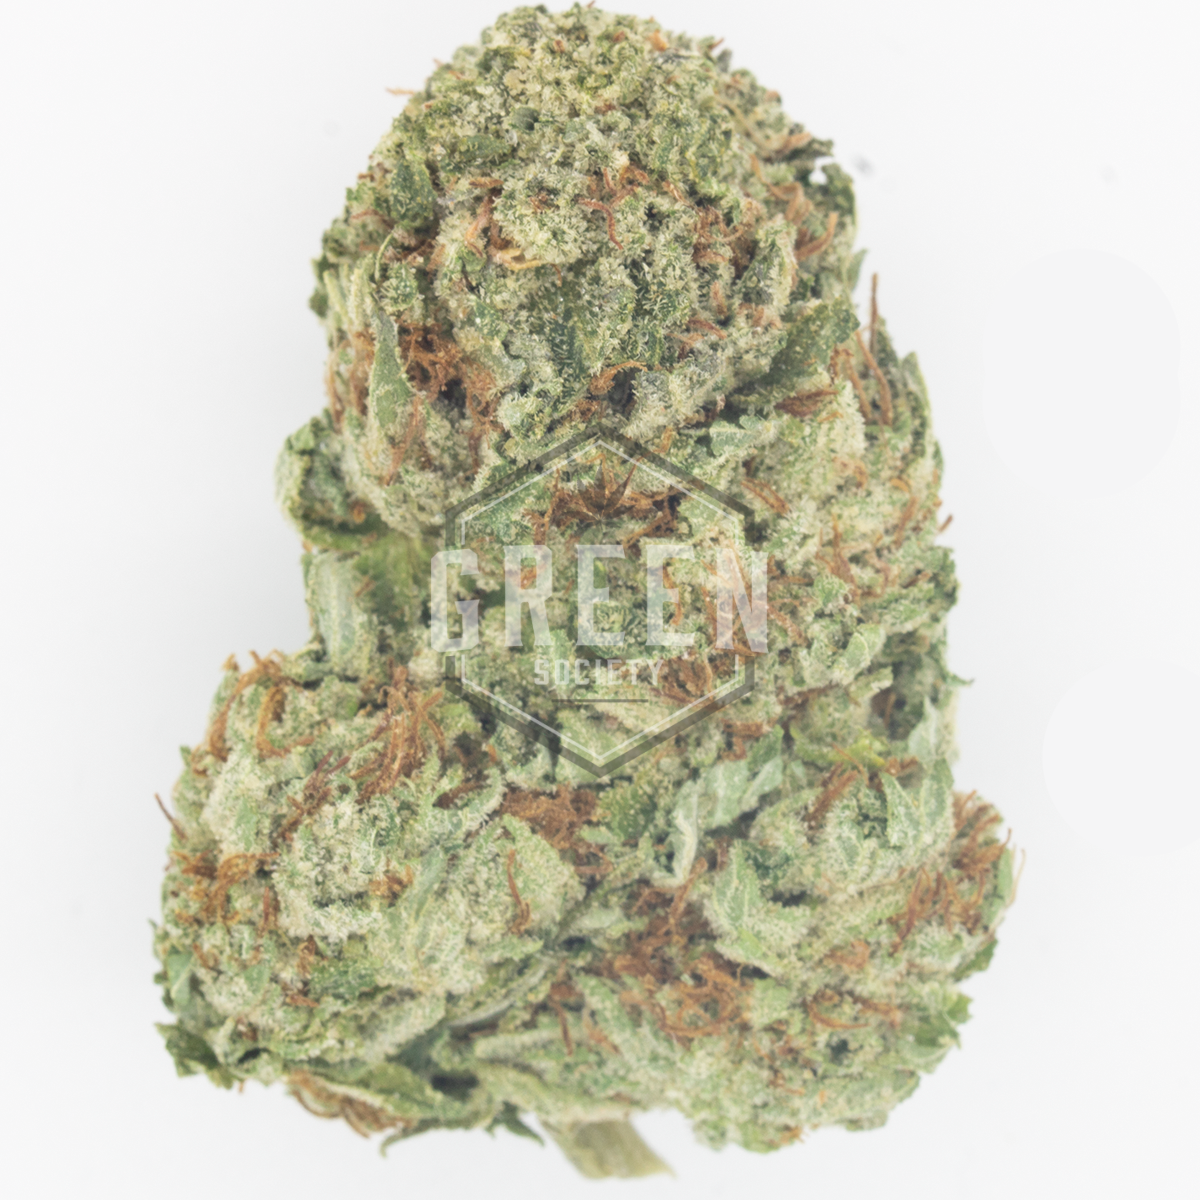 White Fire OG by Green Society - Image © 2018 Green Society. All Rights Reserved.